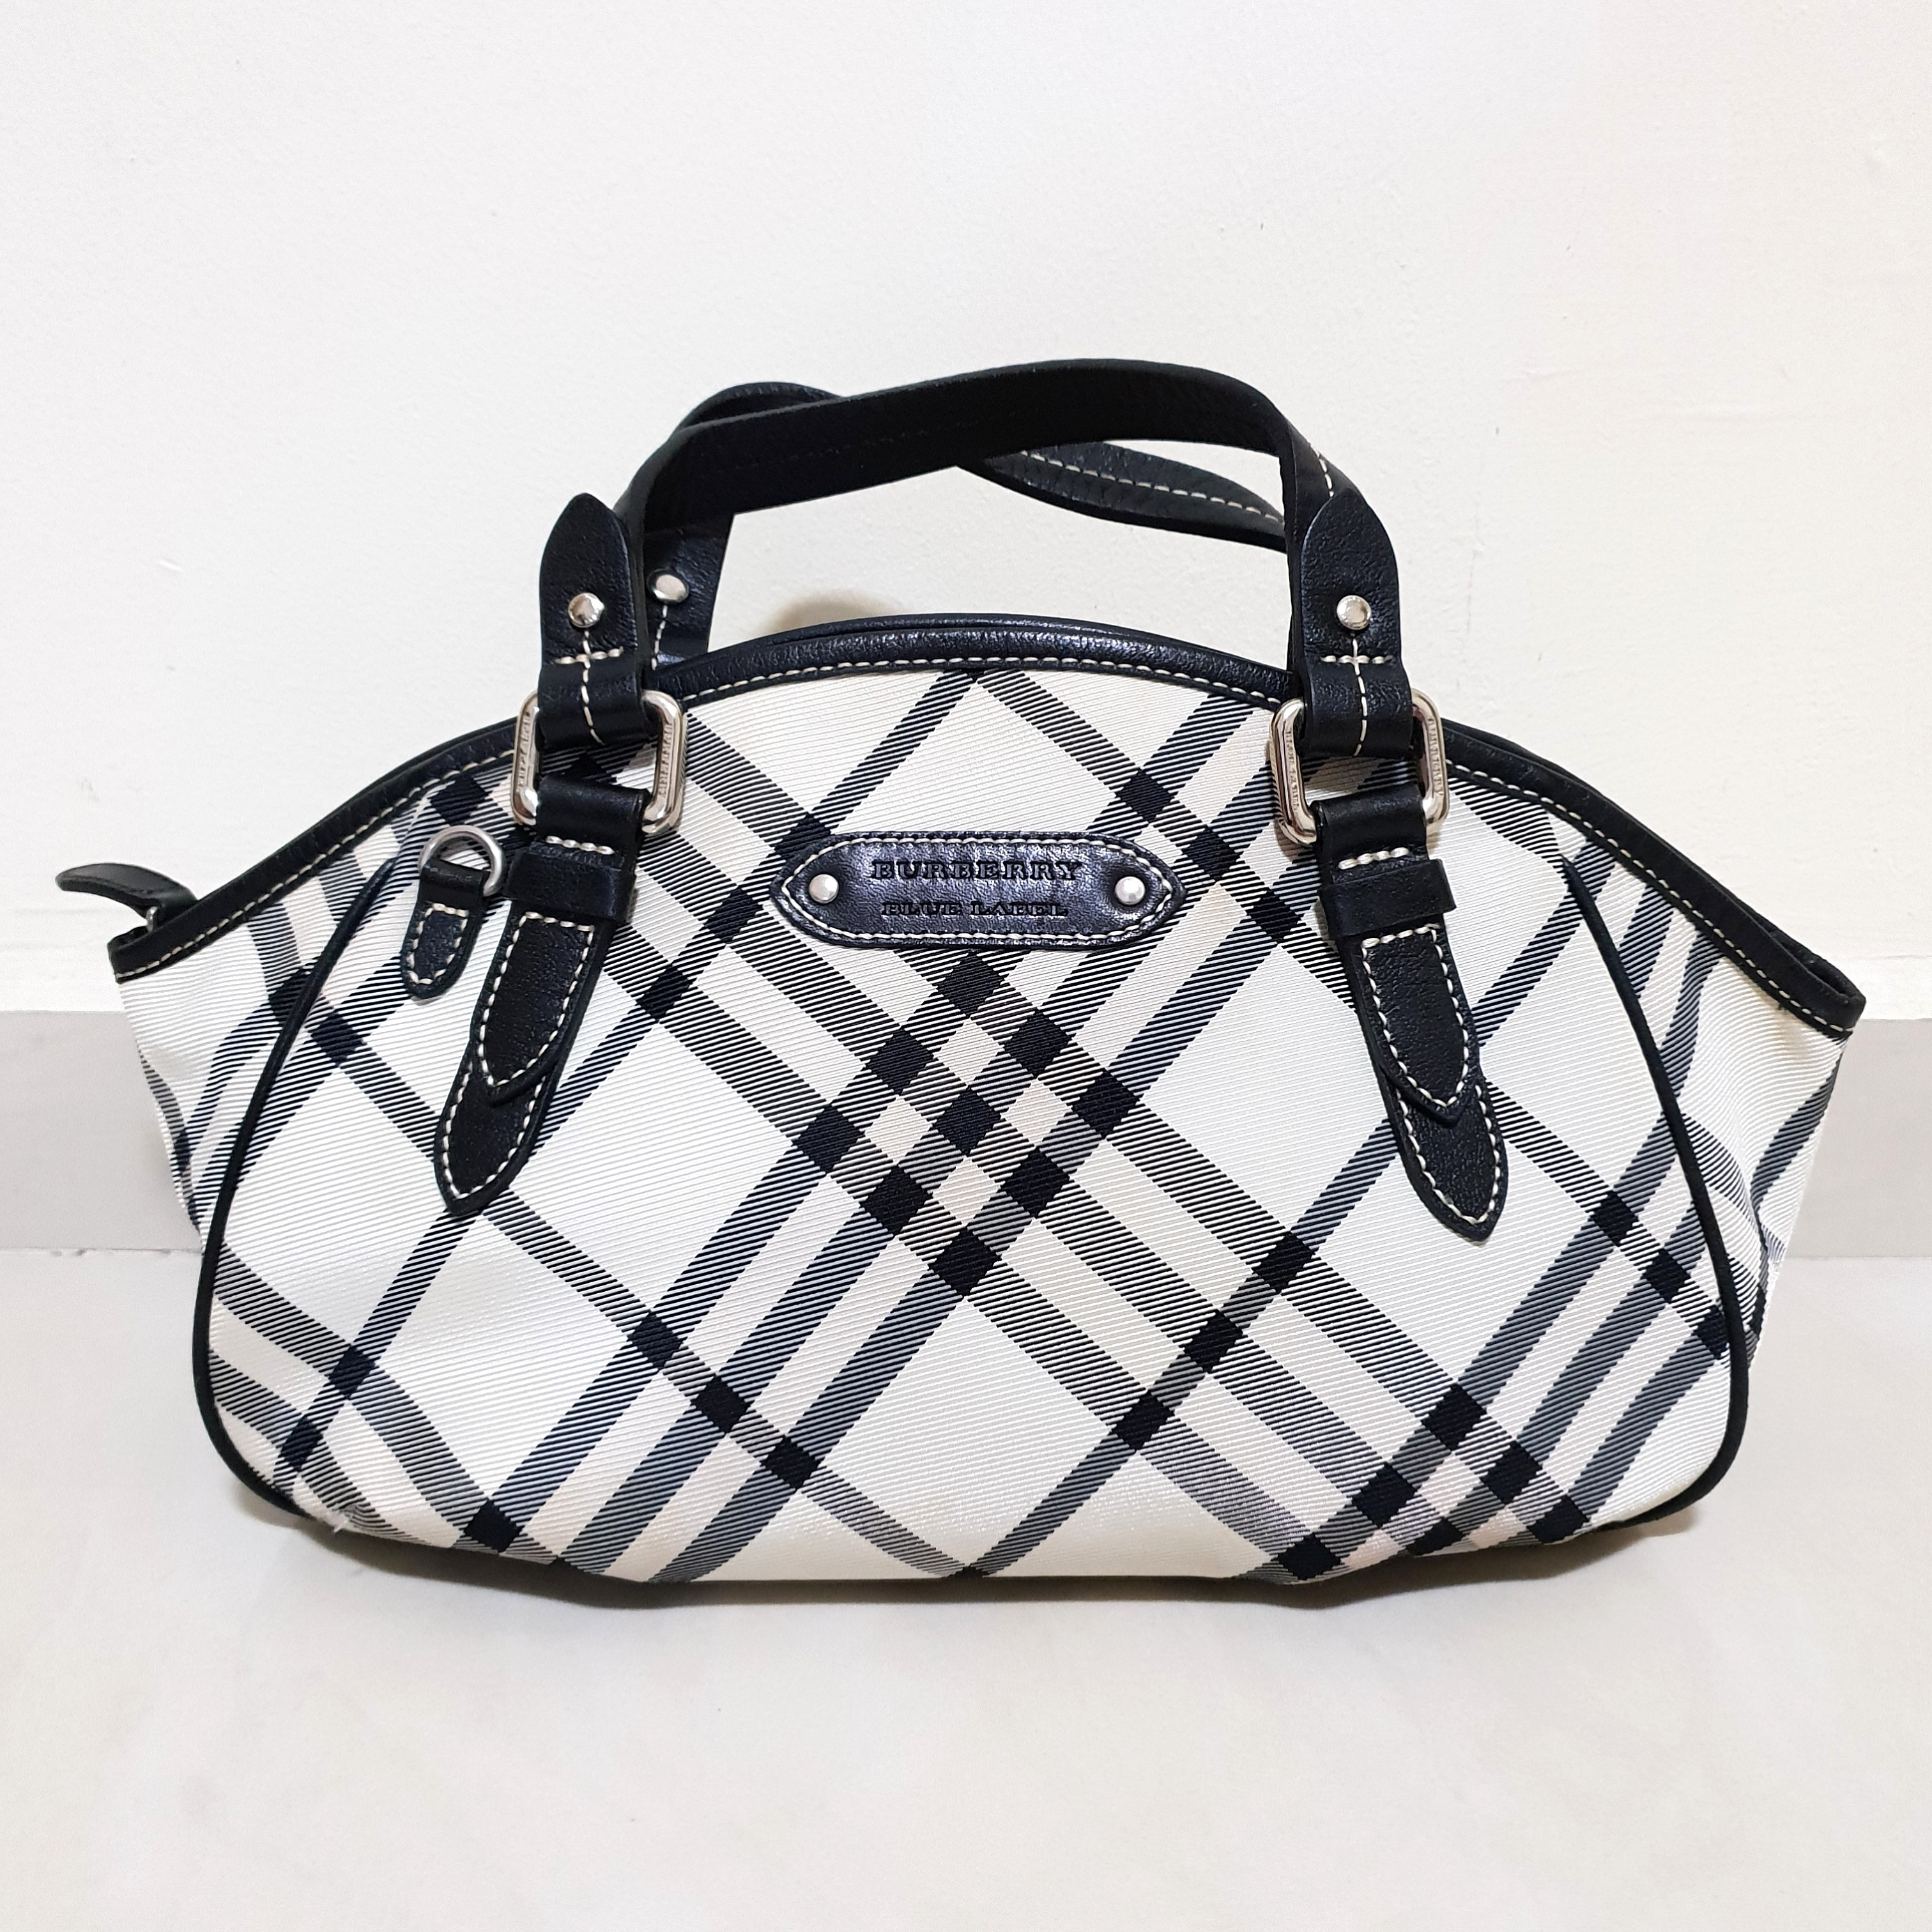 Burberry Blue Label Nova Check Handbag ce53c30915f0b